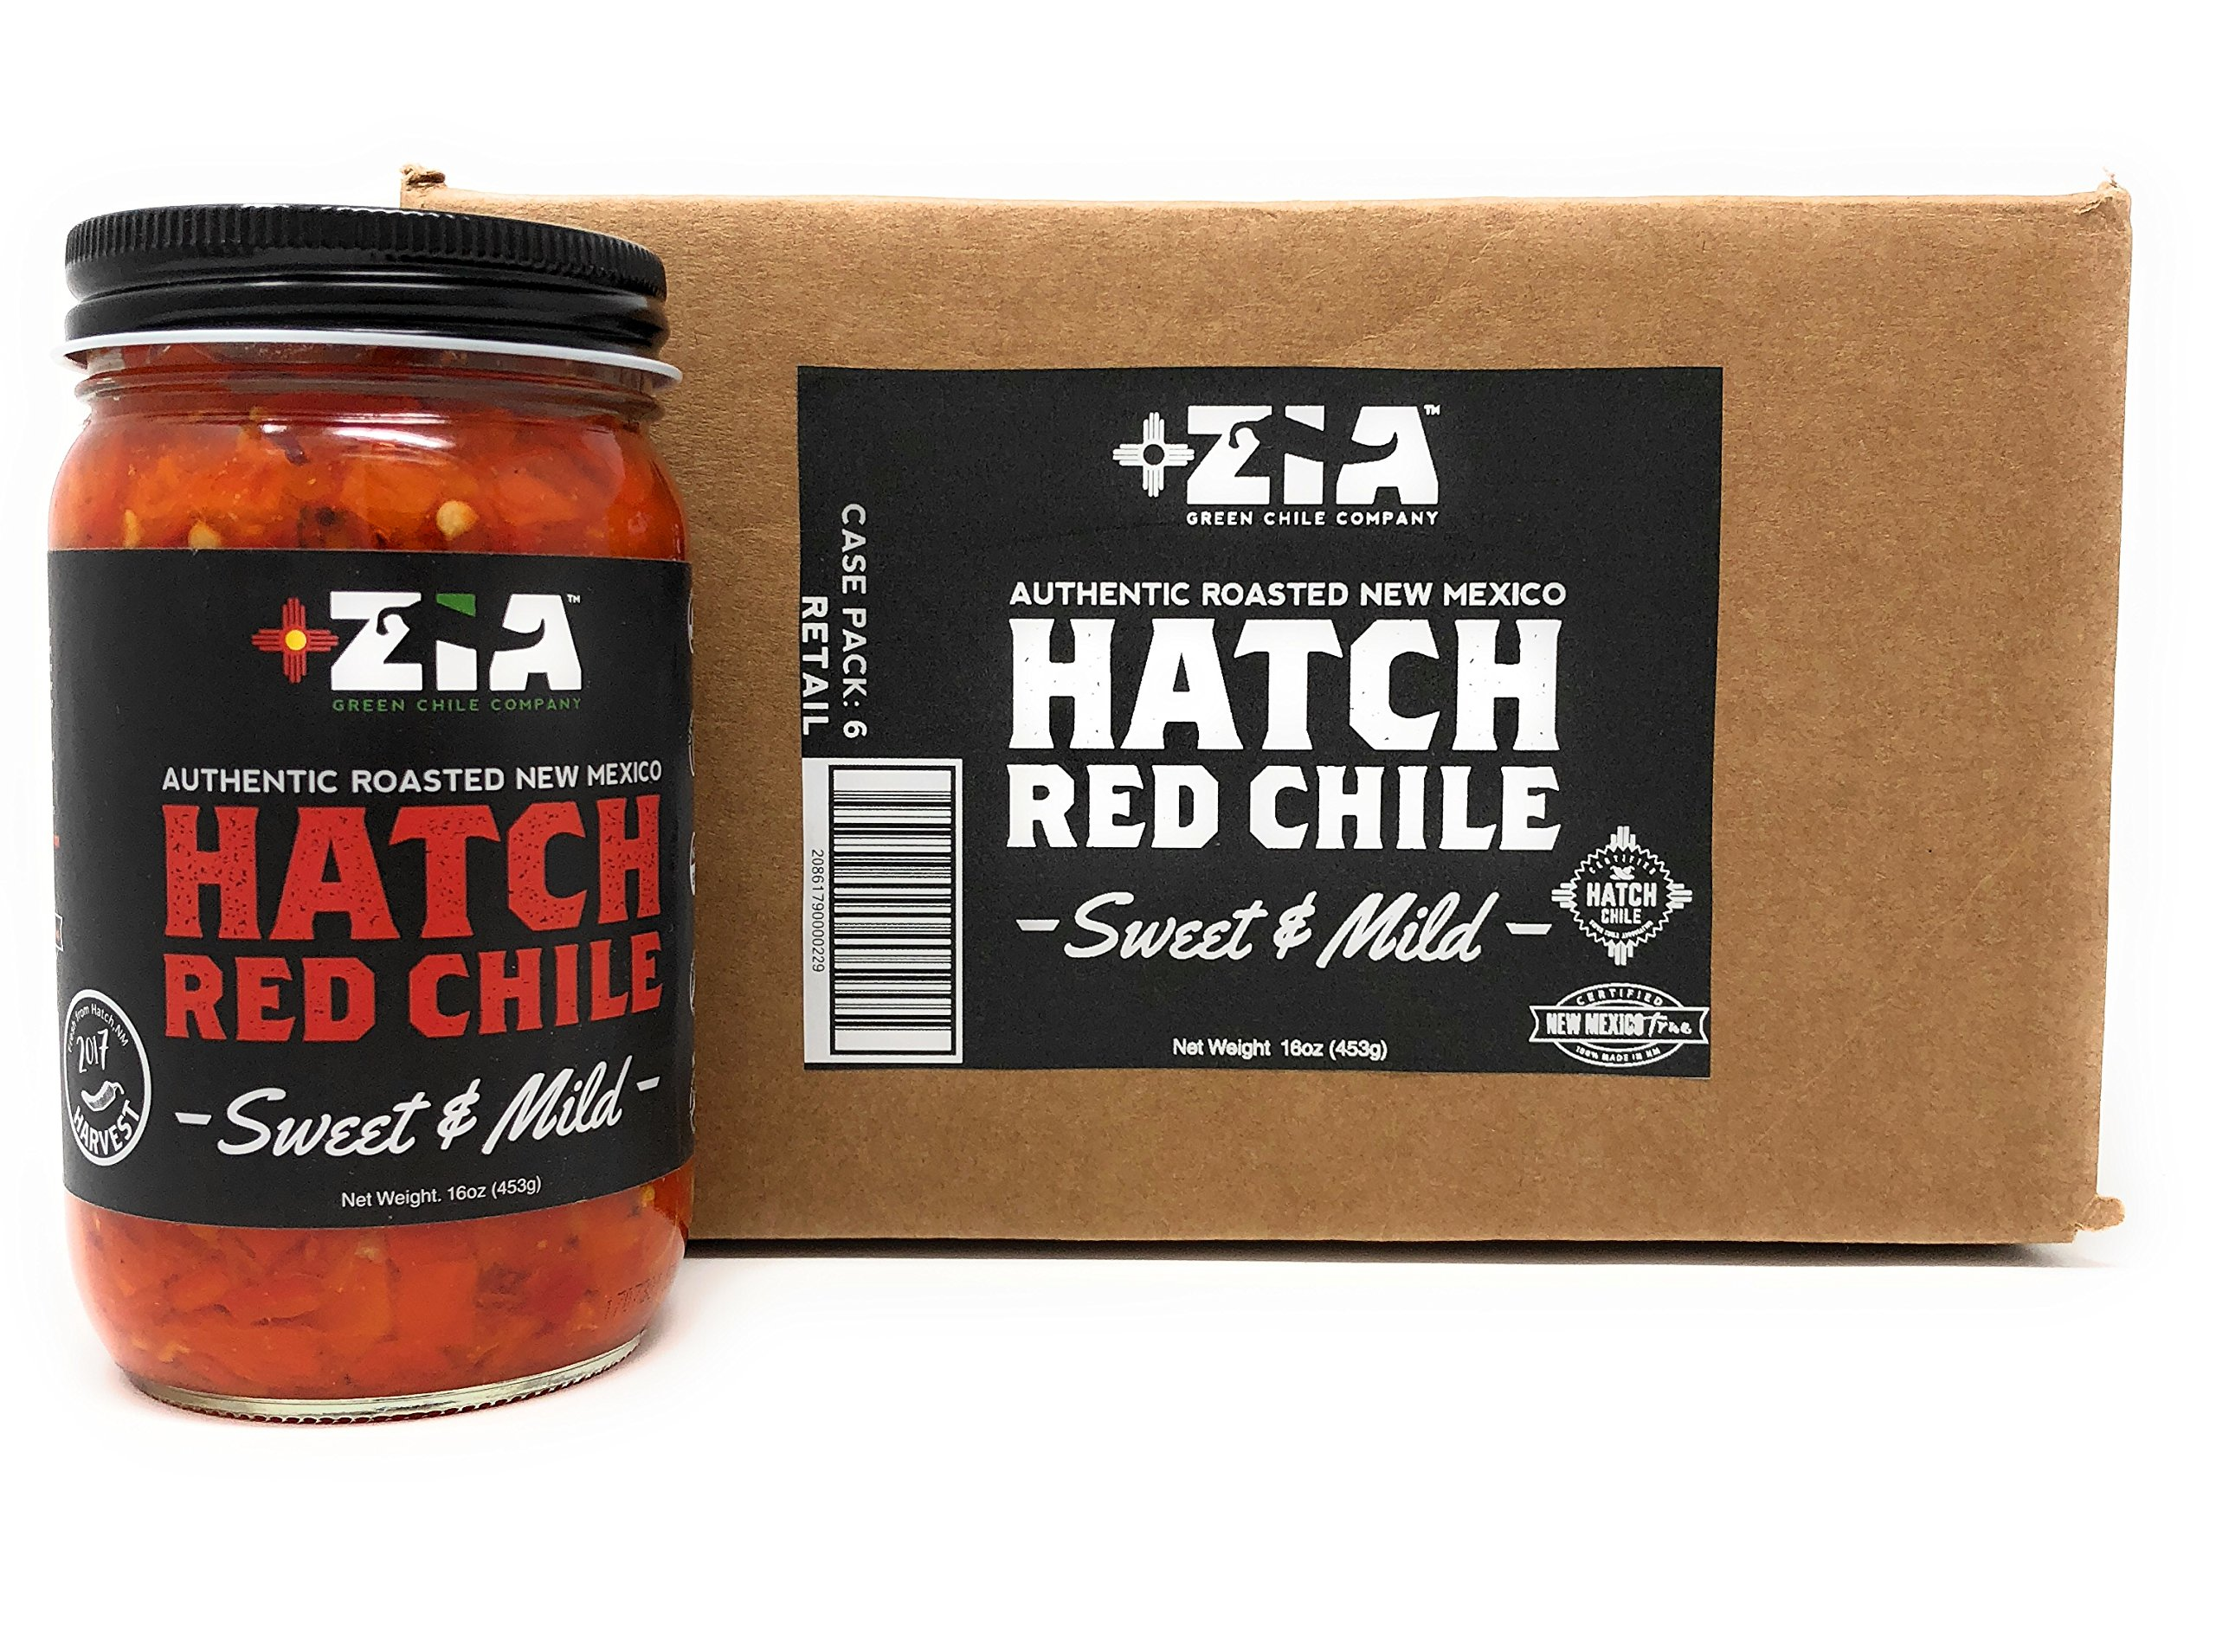 Original New Mexico Hatch Red Chile By Zia Green Chile Company - Delicious Flame-Roasted, Peeled & Diced Southwestern Certified Red Peppers For Salsas, Stews & More, Vegan & Gluten-Free - 6 Pack